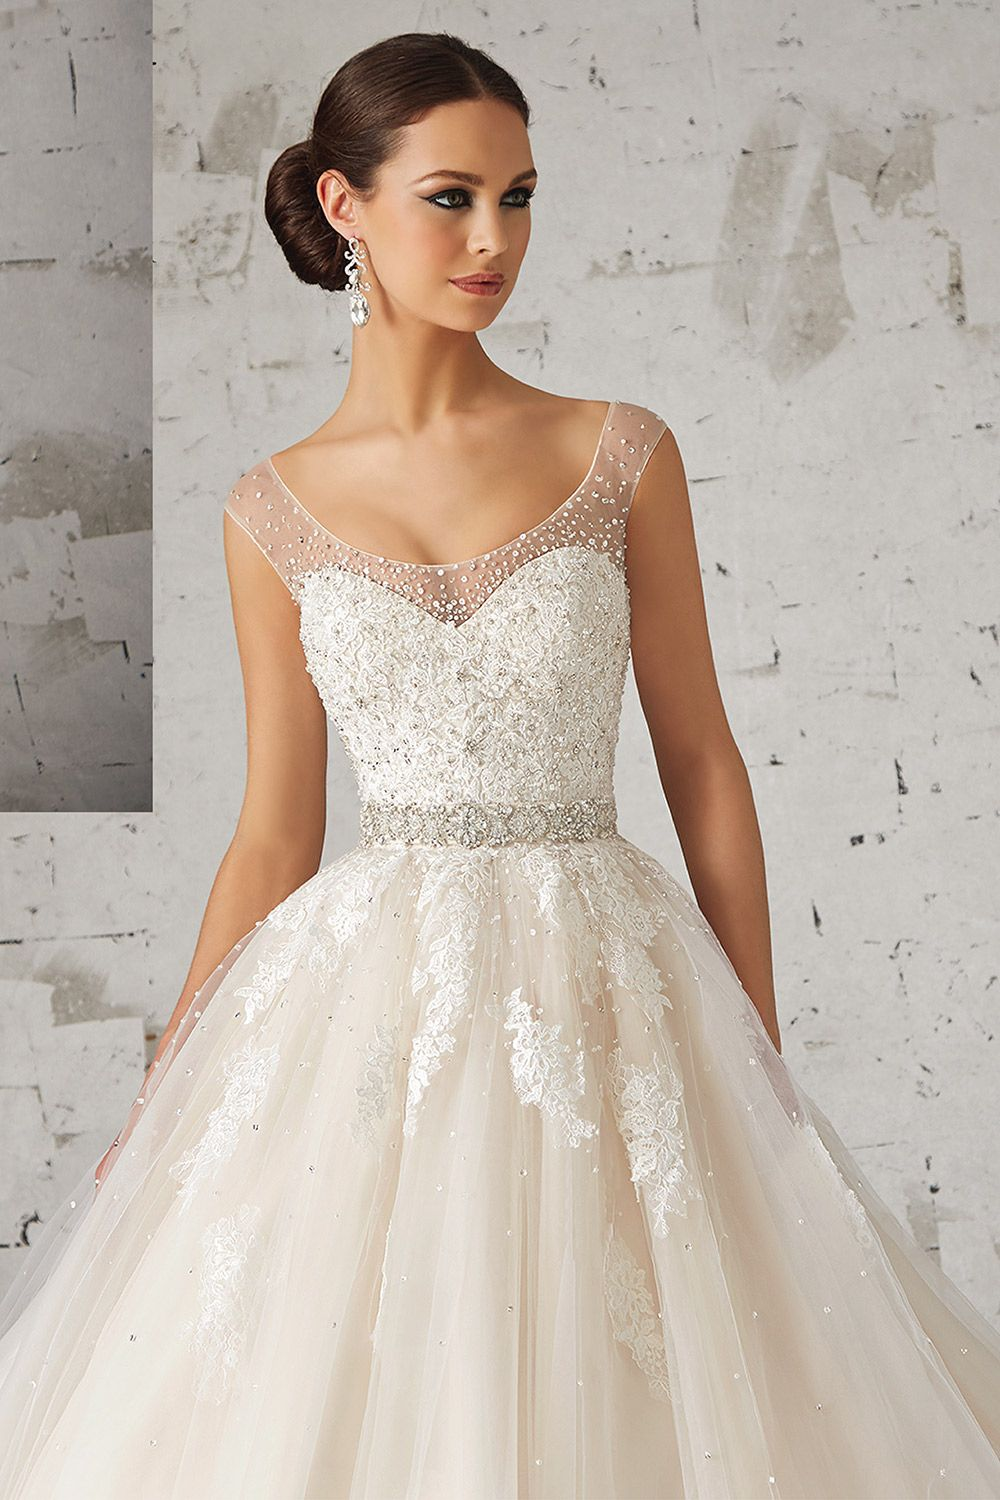 Bridenformal | NANCY … | Vestidos | Pinterest | Vestidos de novia ...